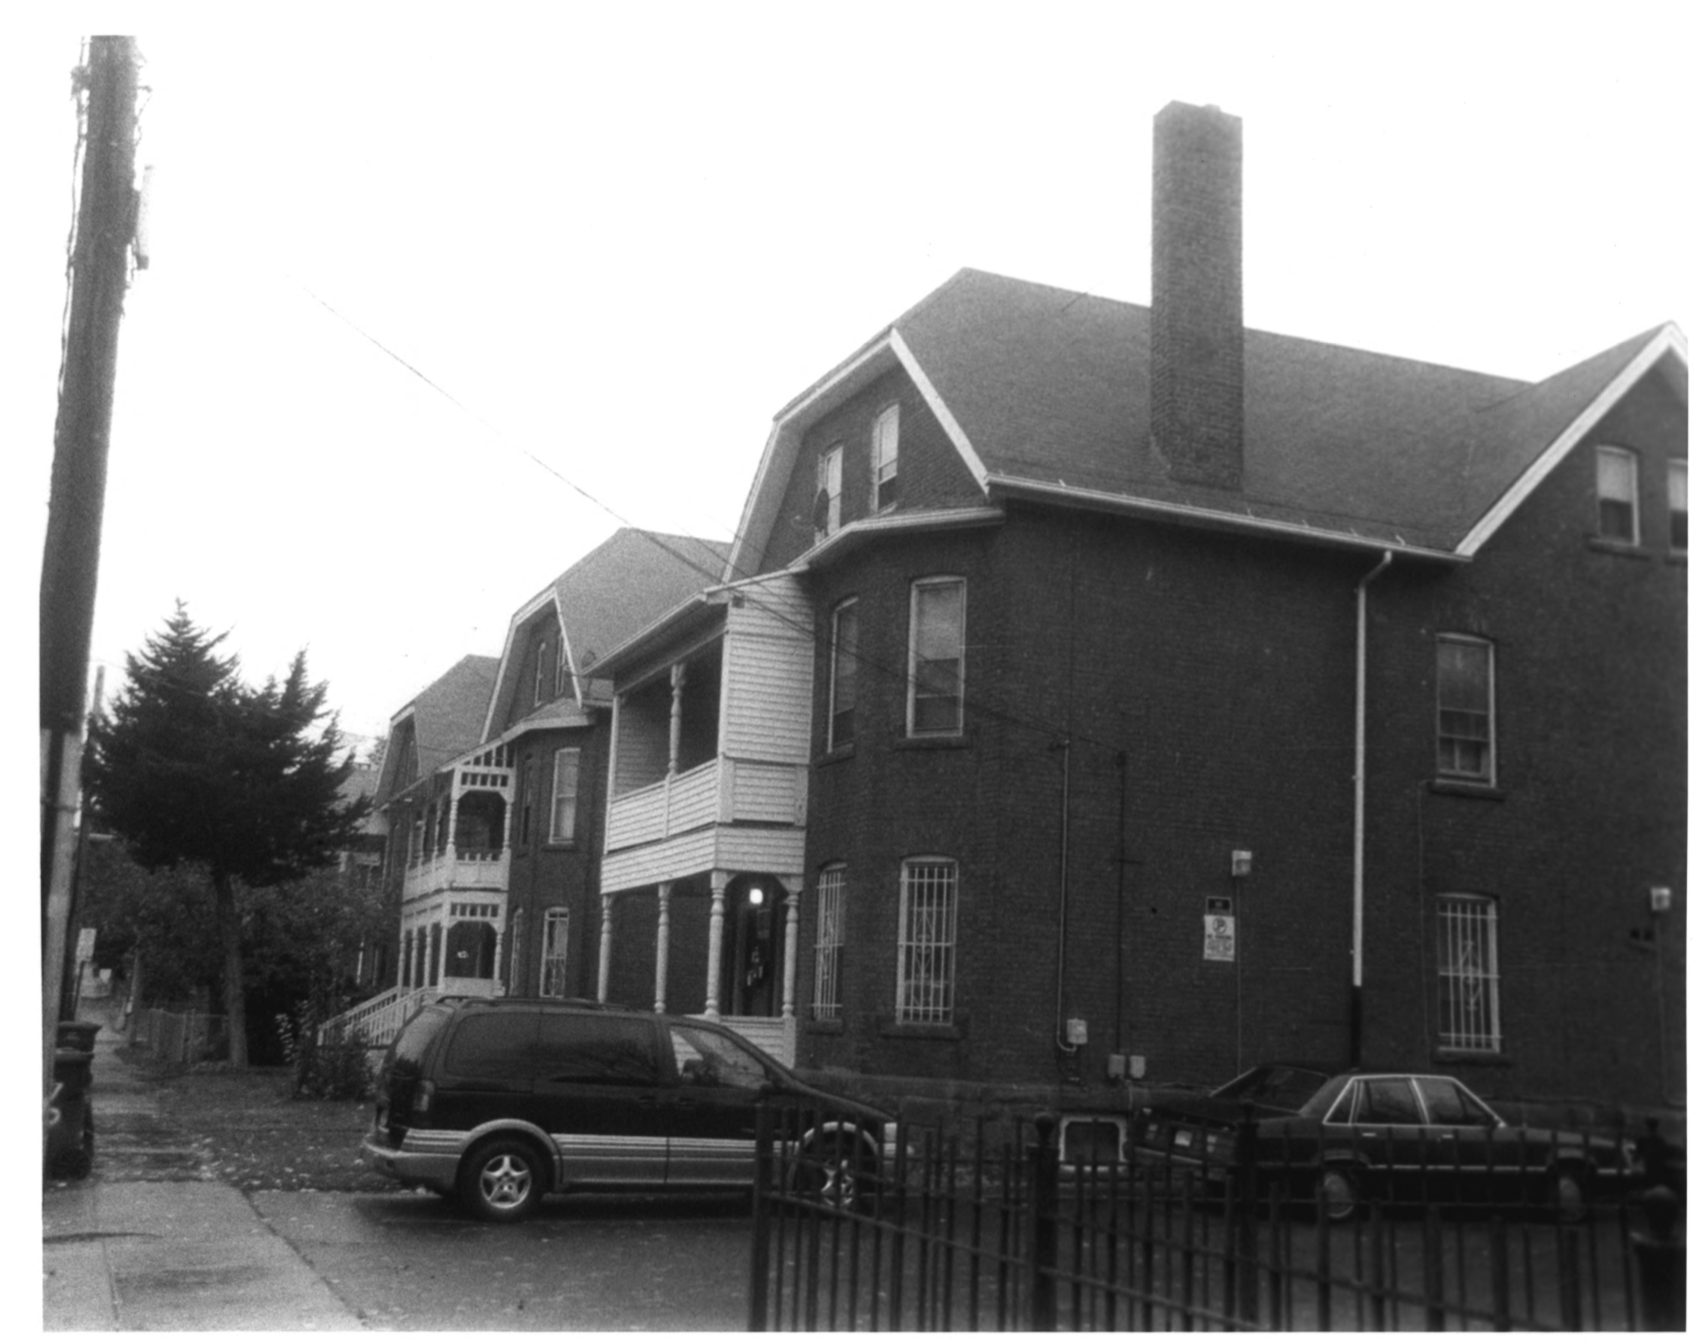 Allen Place - Lincoln Street Historic District Photo Record, Maintained by the NPS, Photo 12